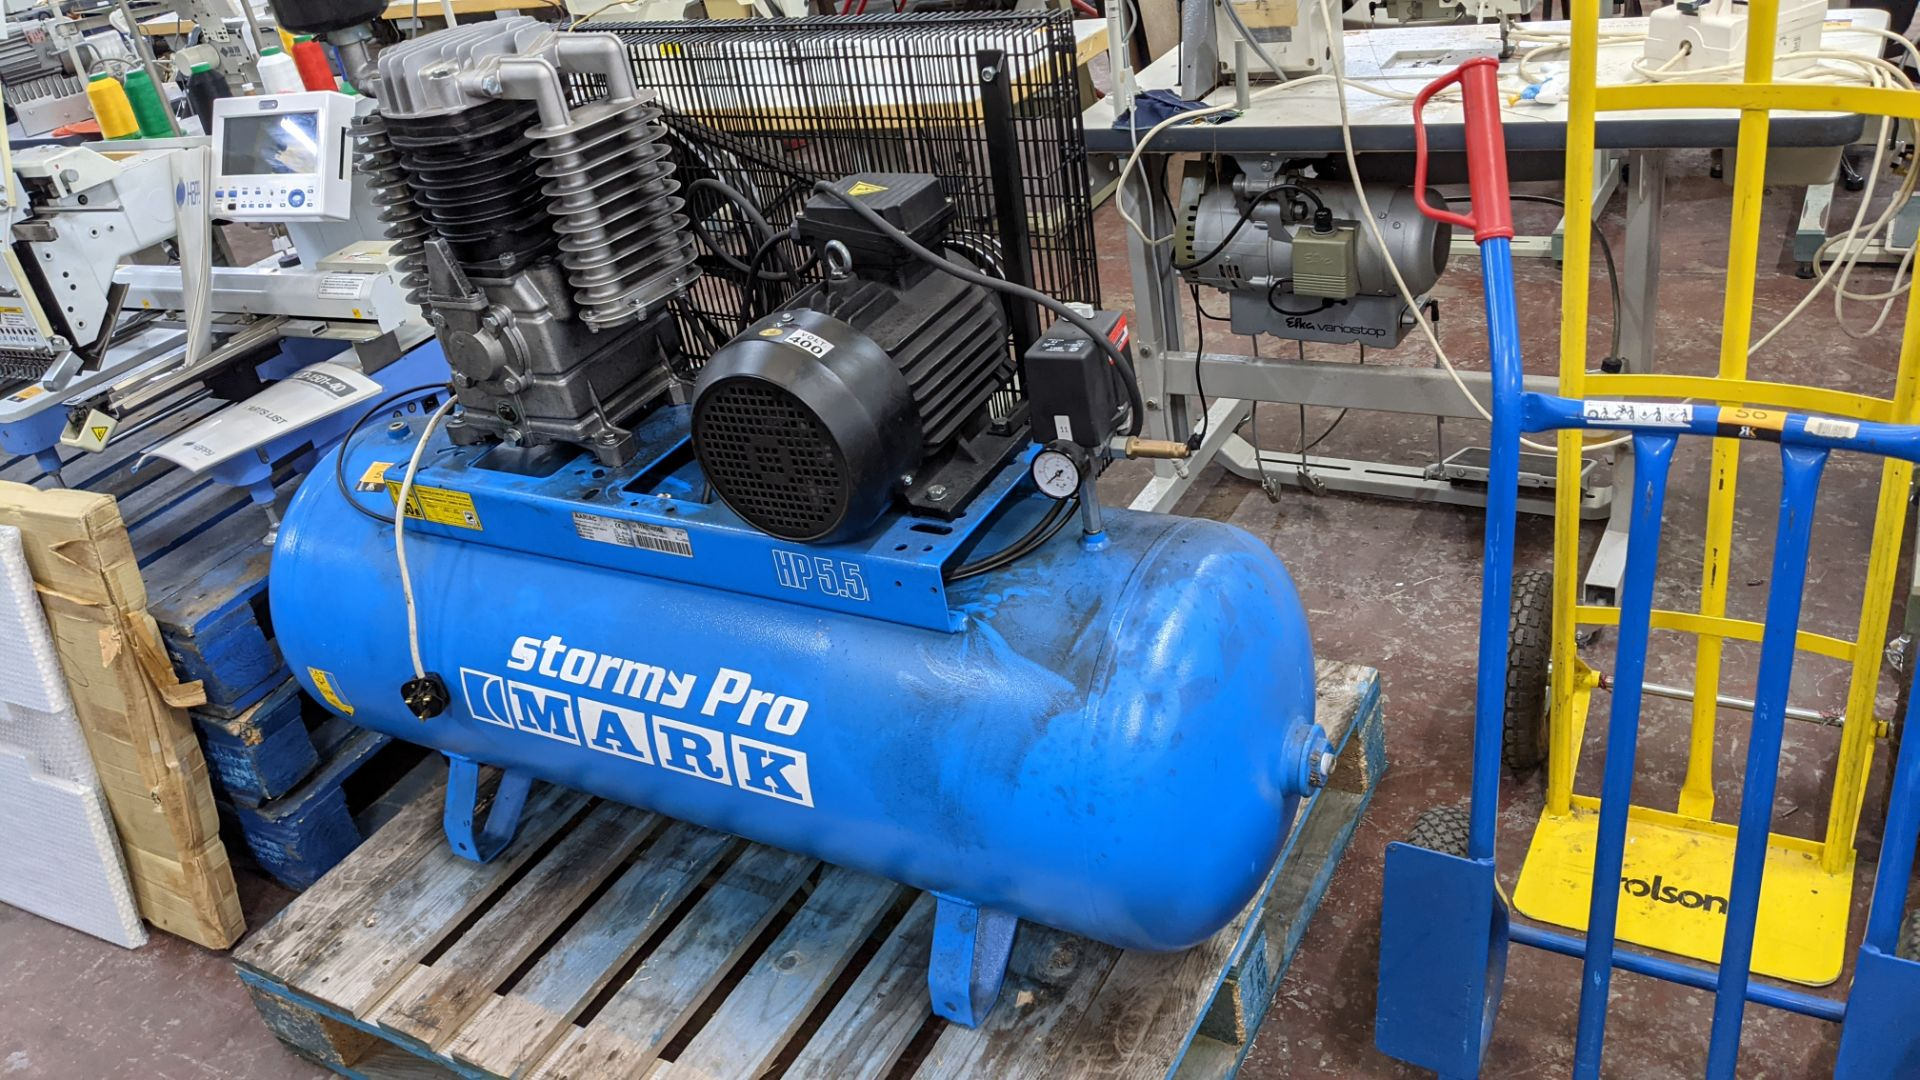 Mark Stormy Pro all-in-one compressor comprising horizontal welded air receiver with compressor equi